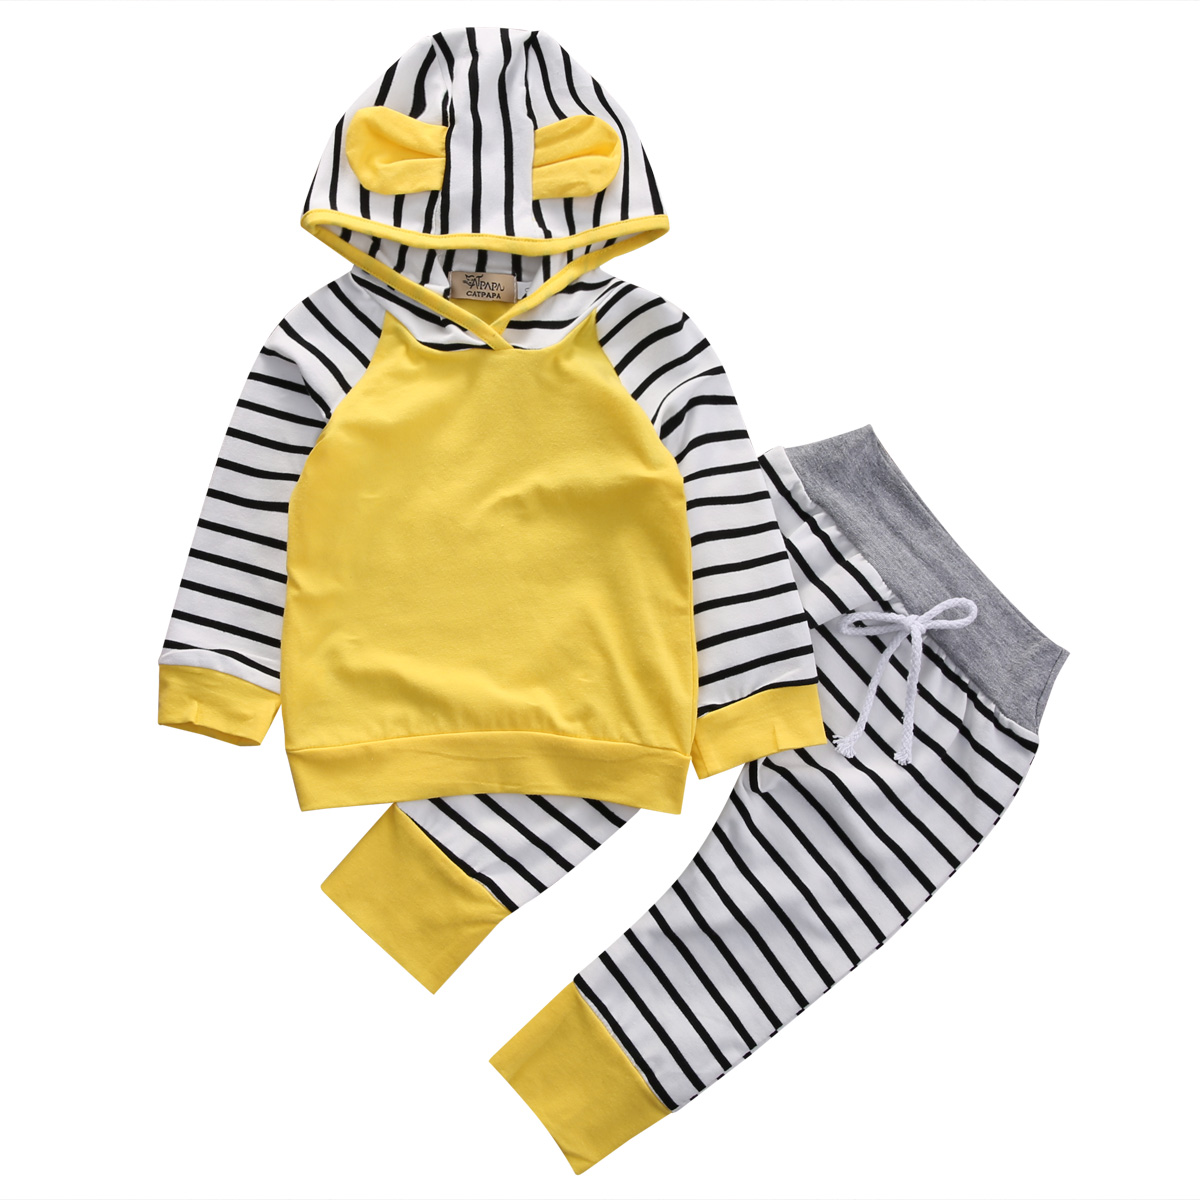 2pcs Baby Boys Girls Sport Autumn Yellow Cotton Long Sleeve Hooded Sweatshirt Top +Long Striped Pants Outfits Clothing Set ralph lauren girls cotton neon sweatshirt pullover top